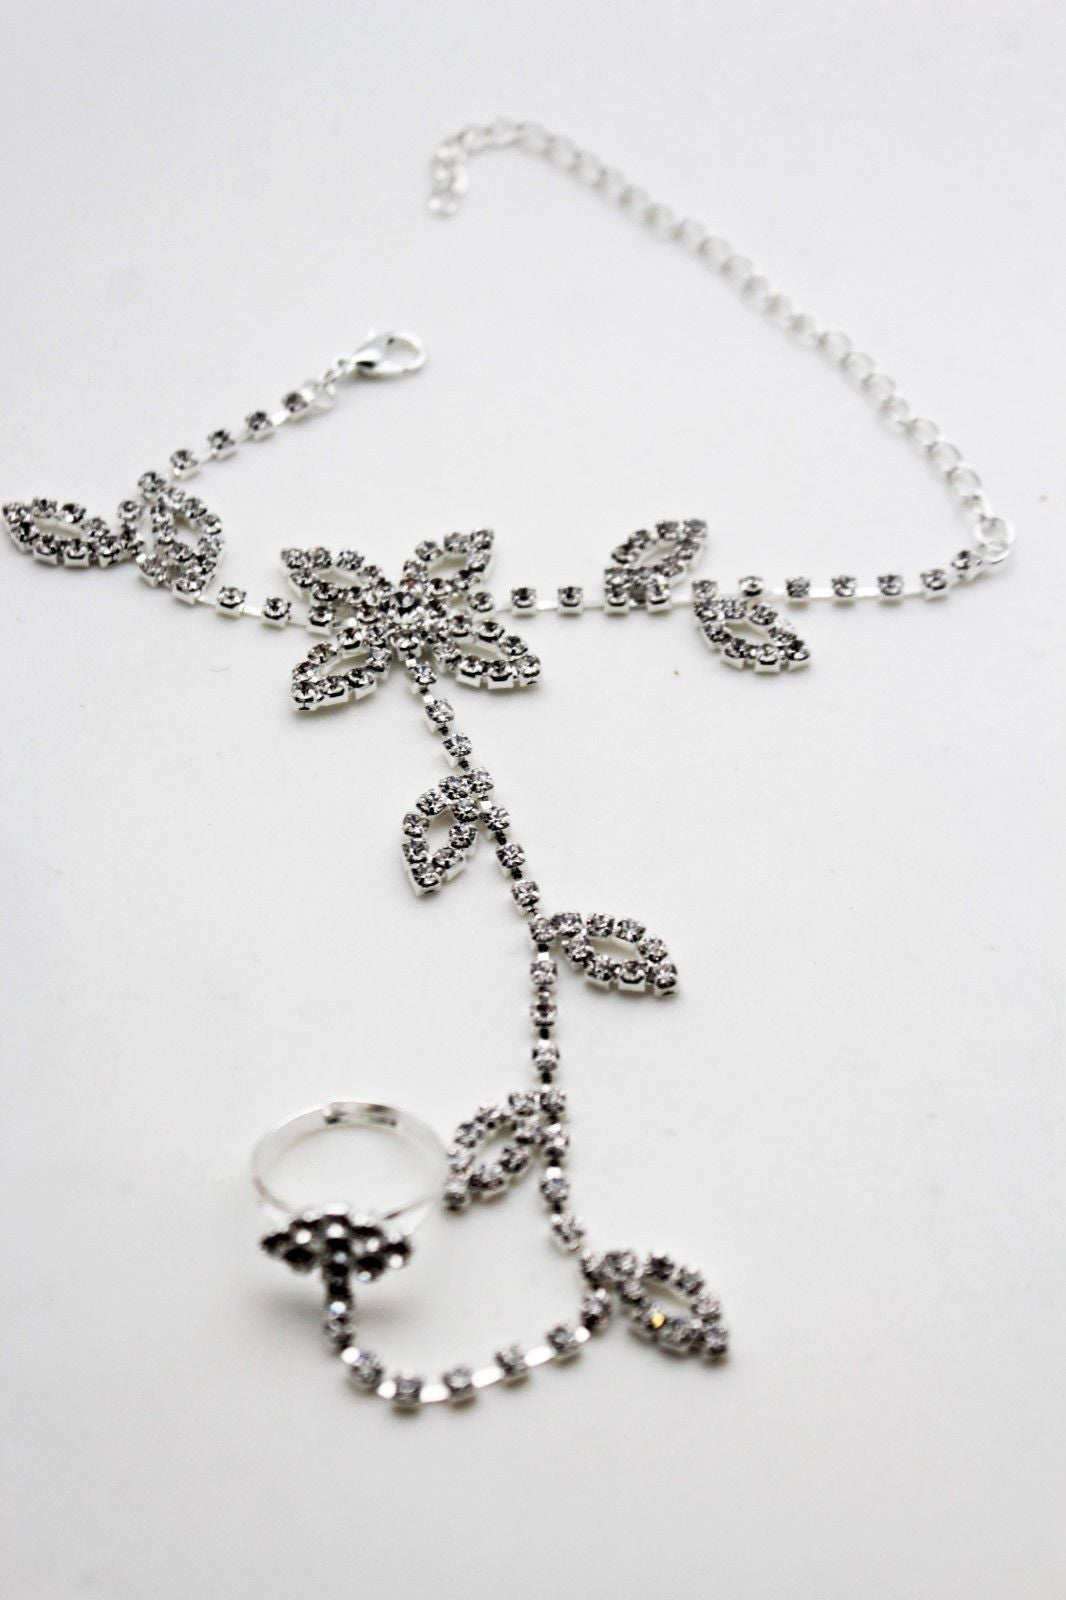 rhinestone dark necklace vintage metal multi pendant product chain silver tone flower